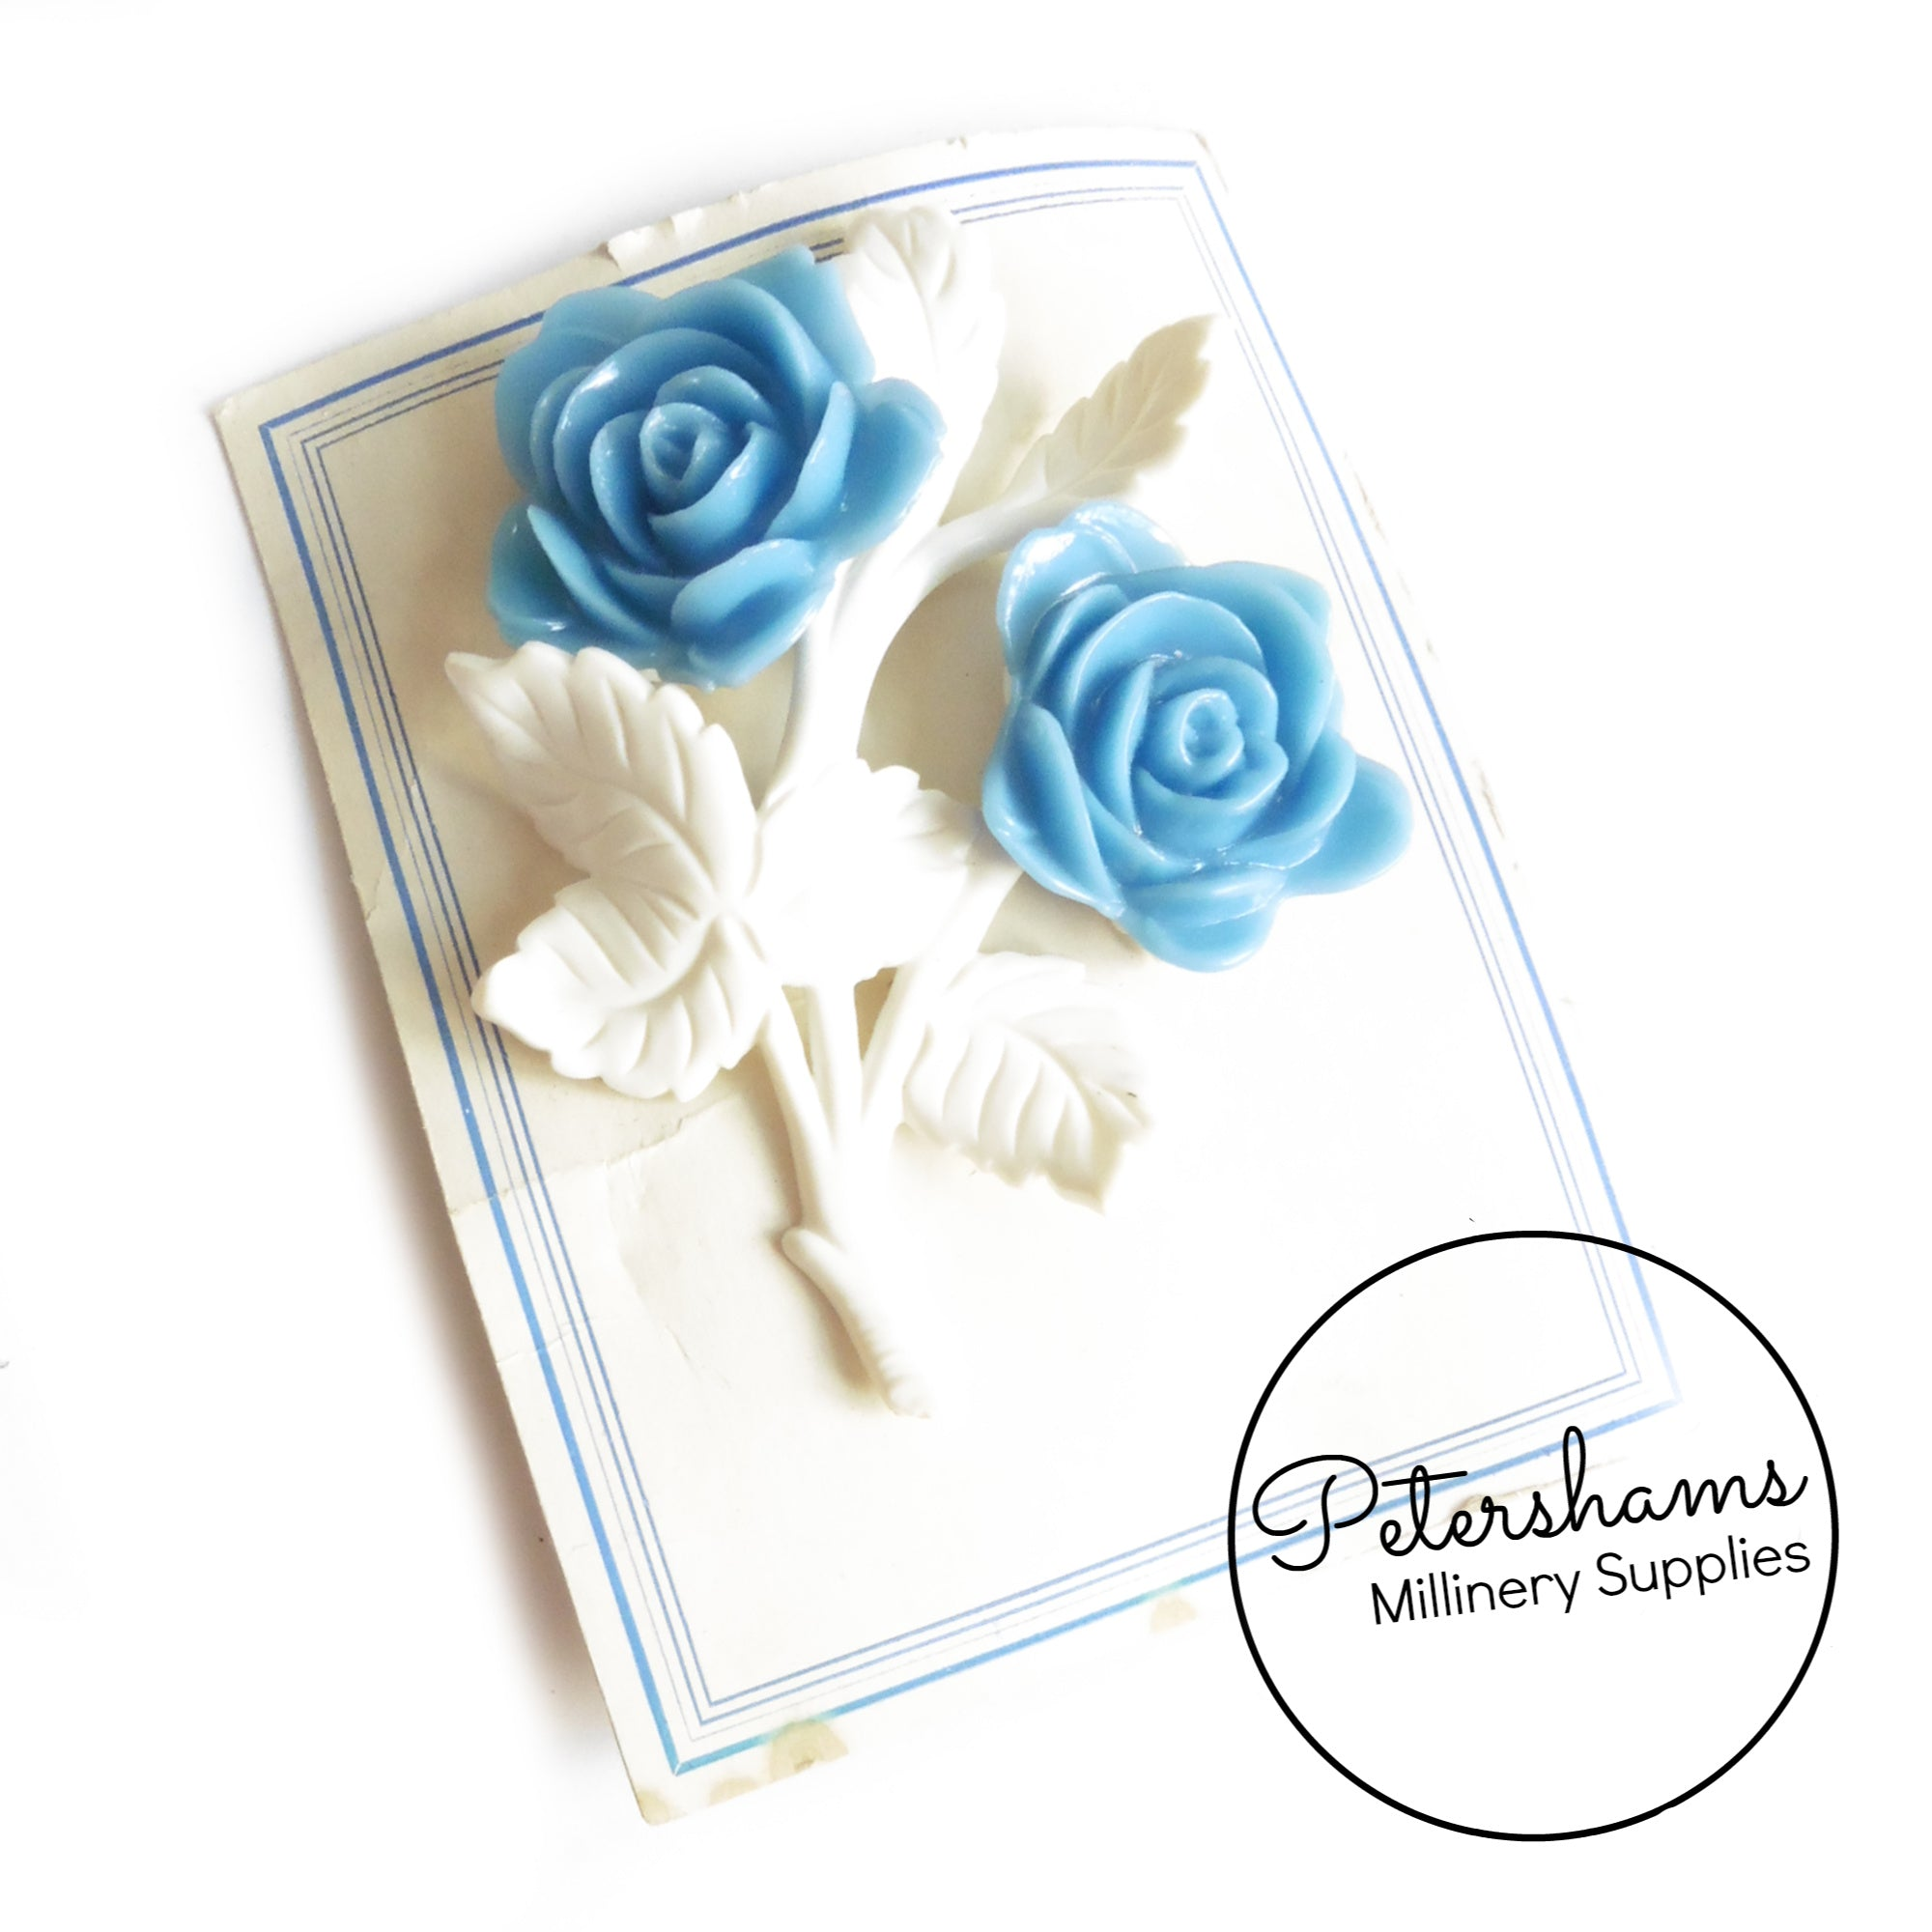 6cc1d63f246 Vintage 1950s Double Rose Brooch Pin – Petershams Millinery Supplies